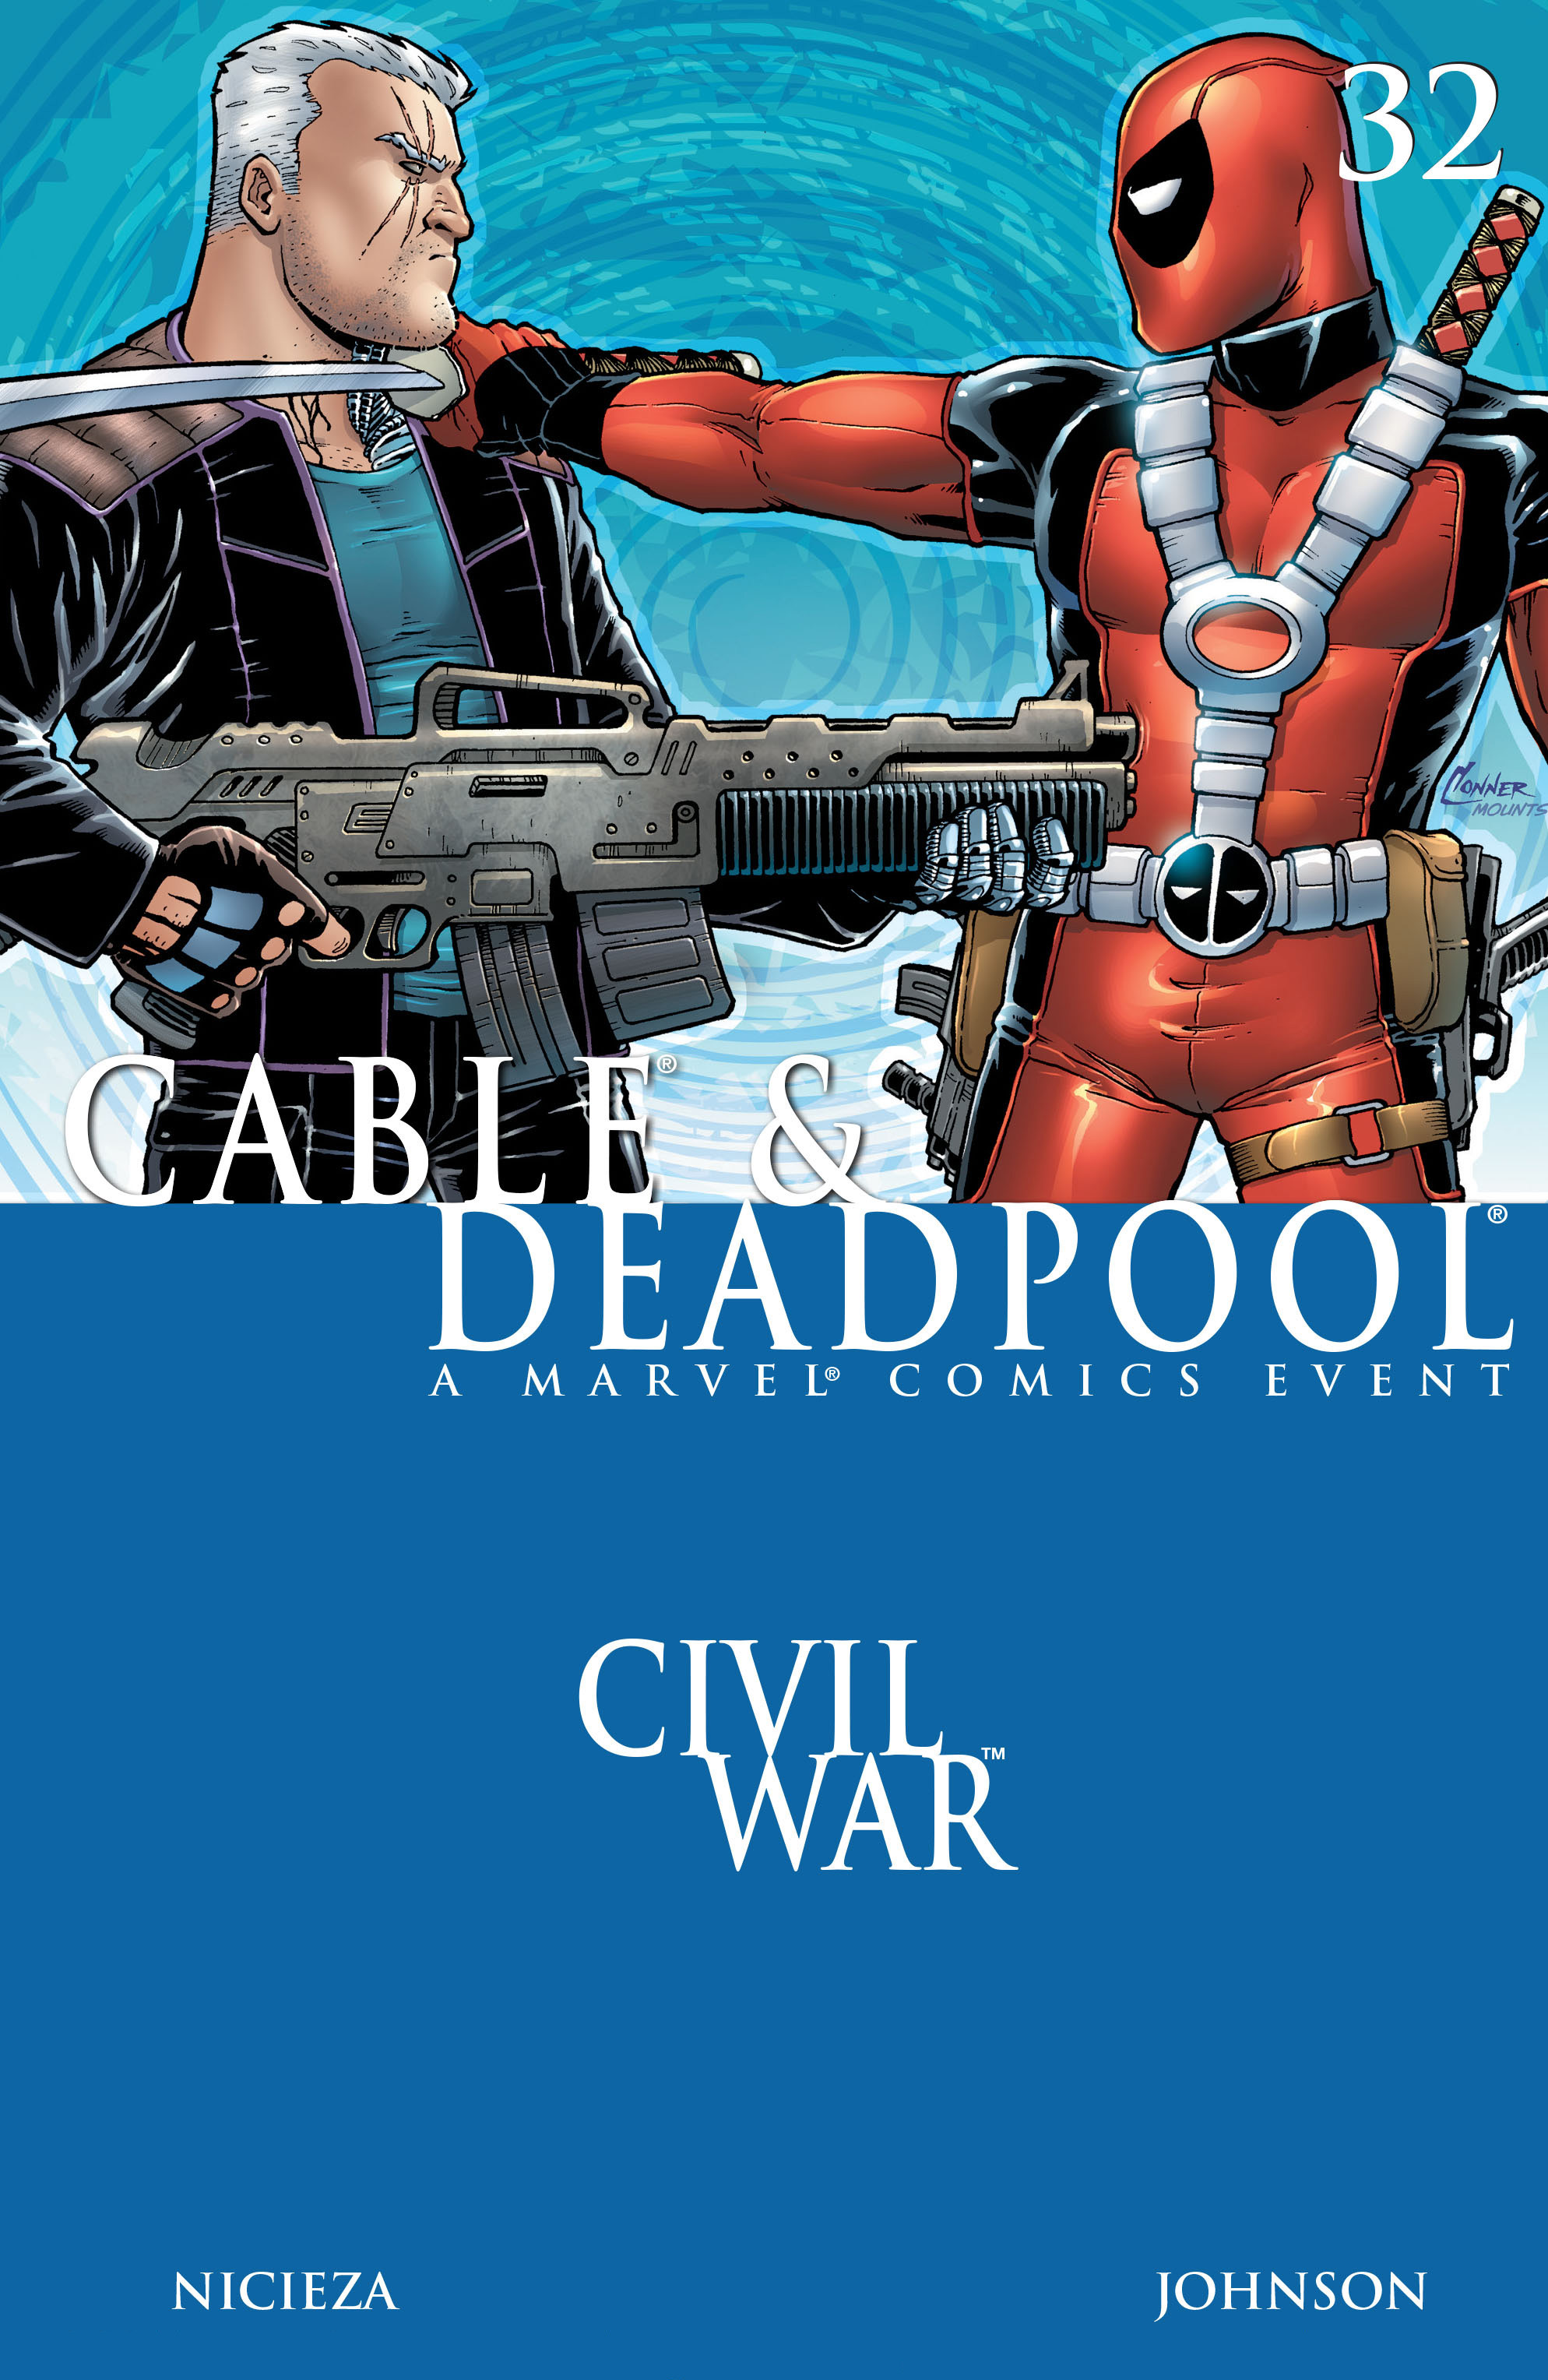 Cable & Deadpool Vol 1 32.jpg